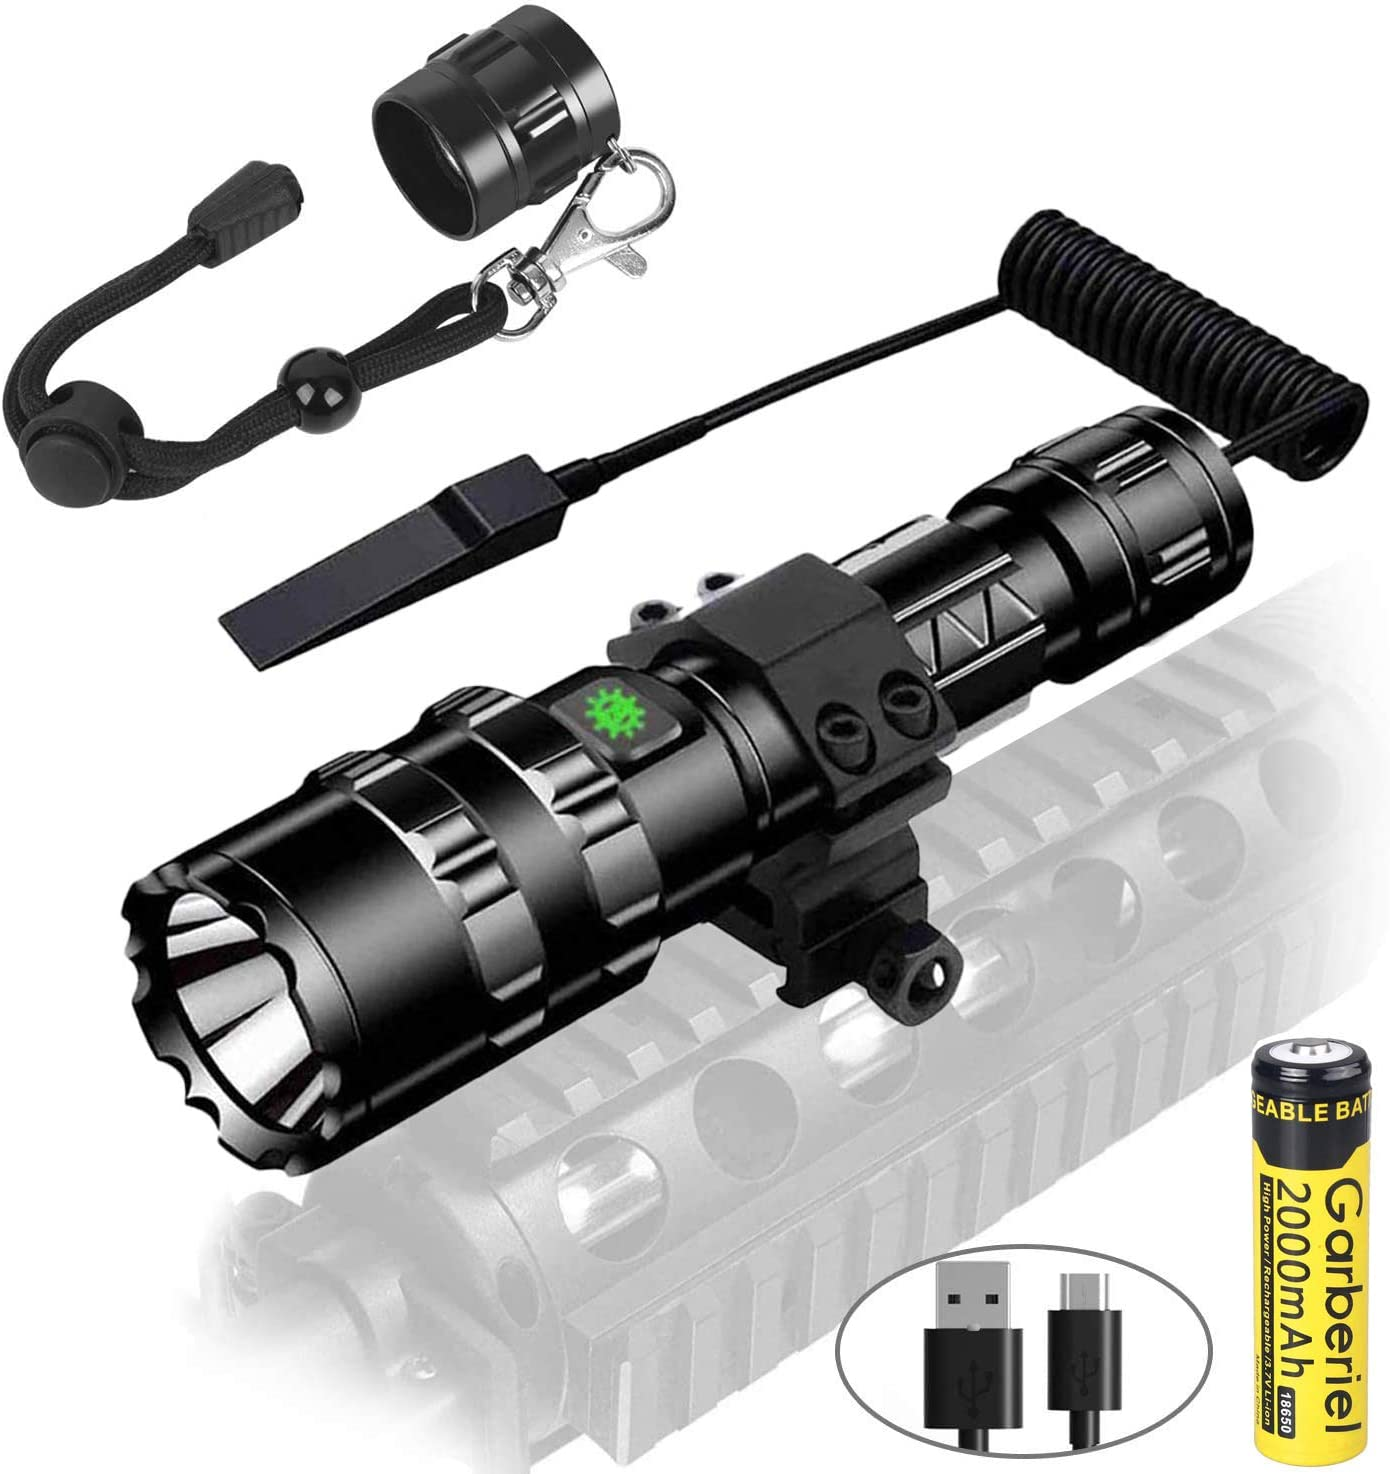 Garberiel 2 in 1 L2 LED Tactical Flashlight with Picatinny Rail Mount – 5 Modes 3000 Lumens Bright Flashlight USB Rechargeable Waterproof Scout Light Torch Hunting Light